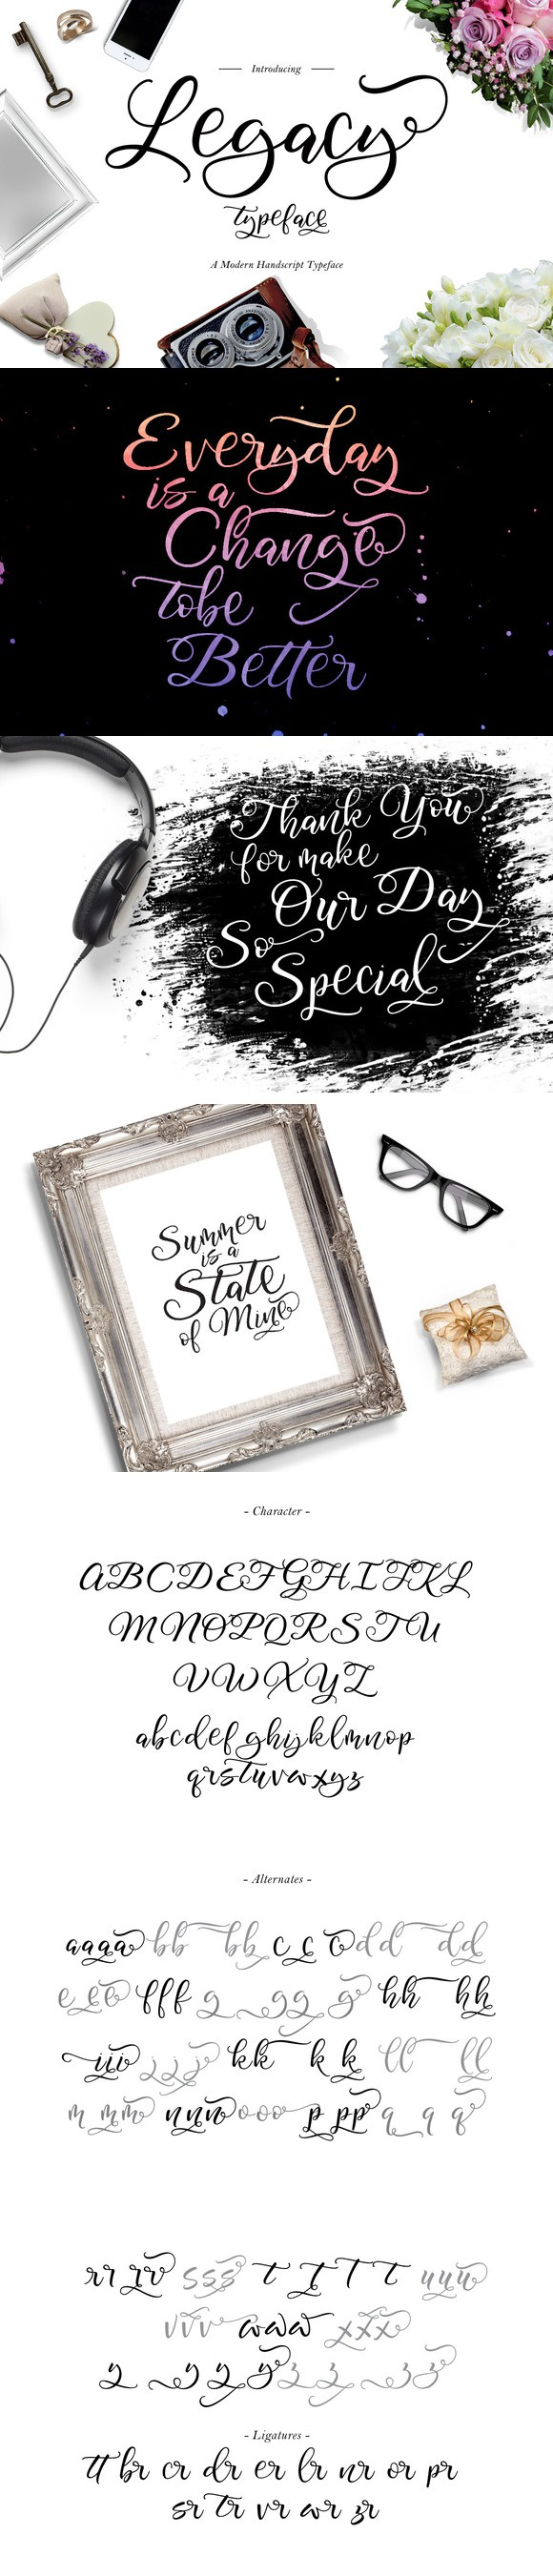 cursive fonts for wedding cards%0A Legacy Typeface  Script Fonts          Wedding FontsWedding CardsRomantic